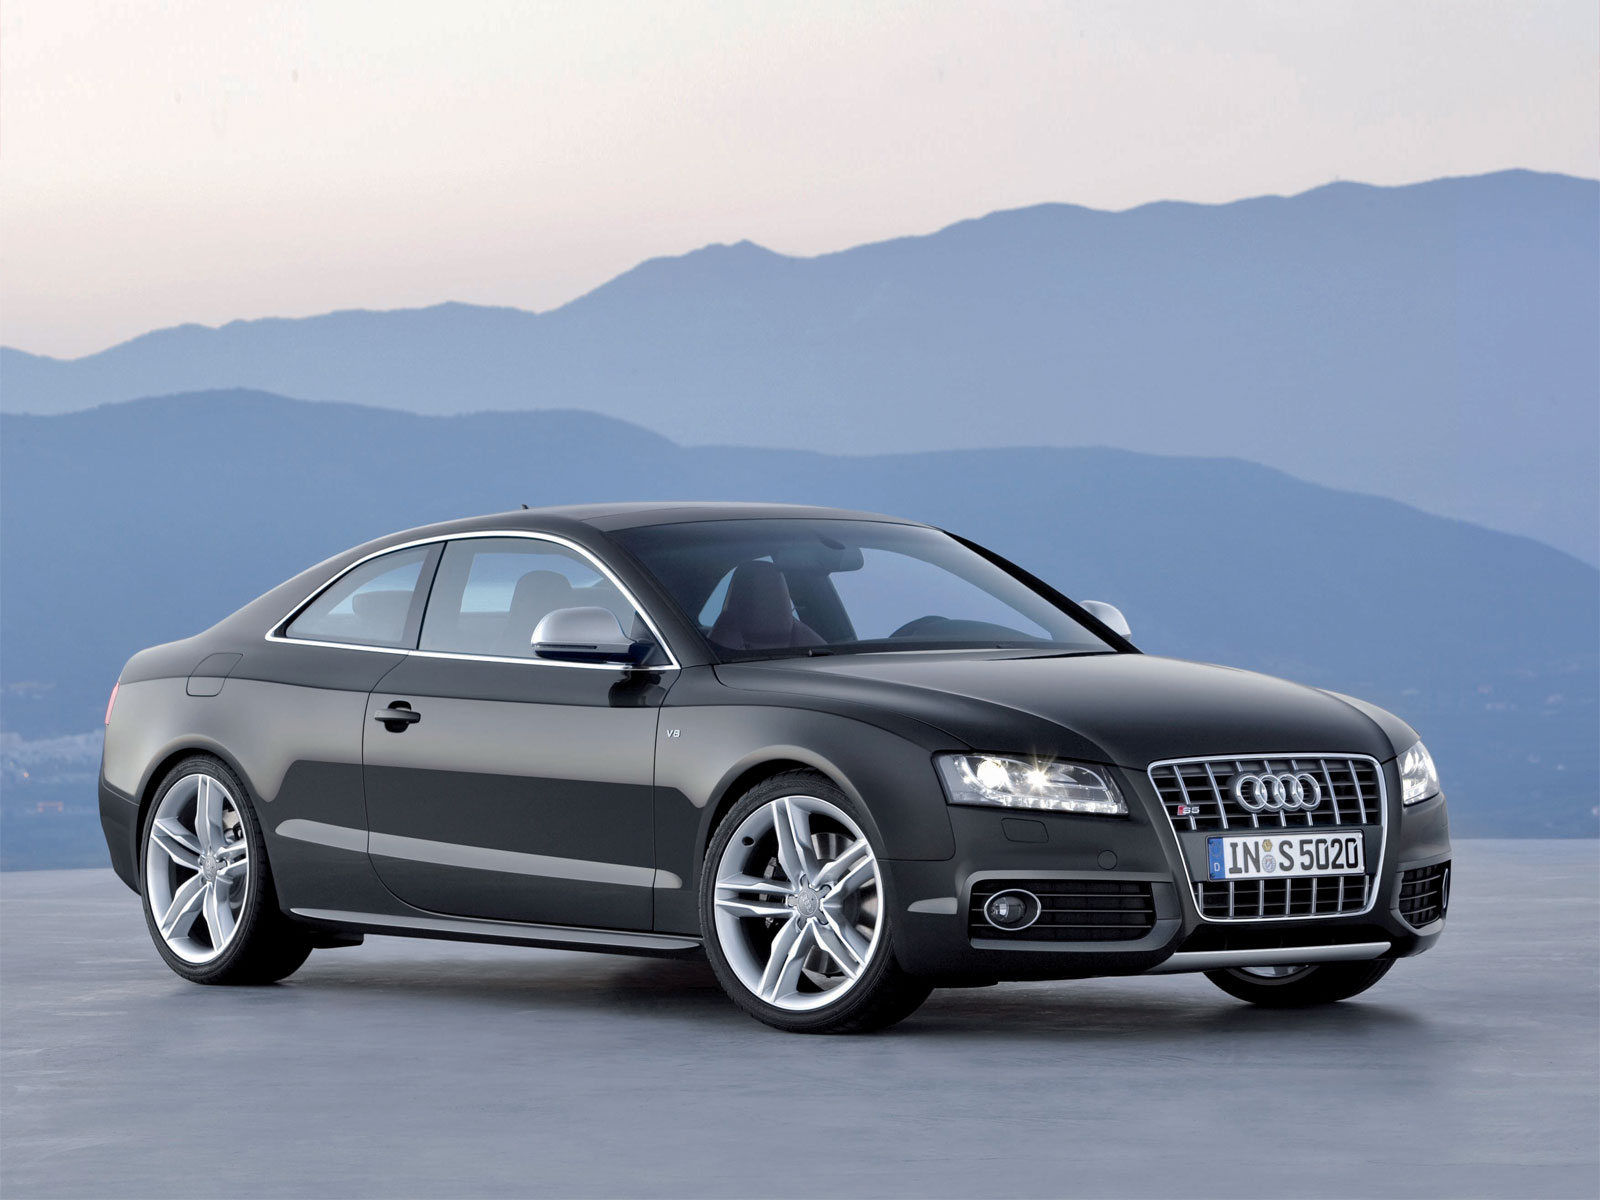 Audi S5 Hd Wallpapers Hd Car Wallpapers